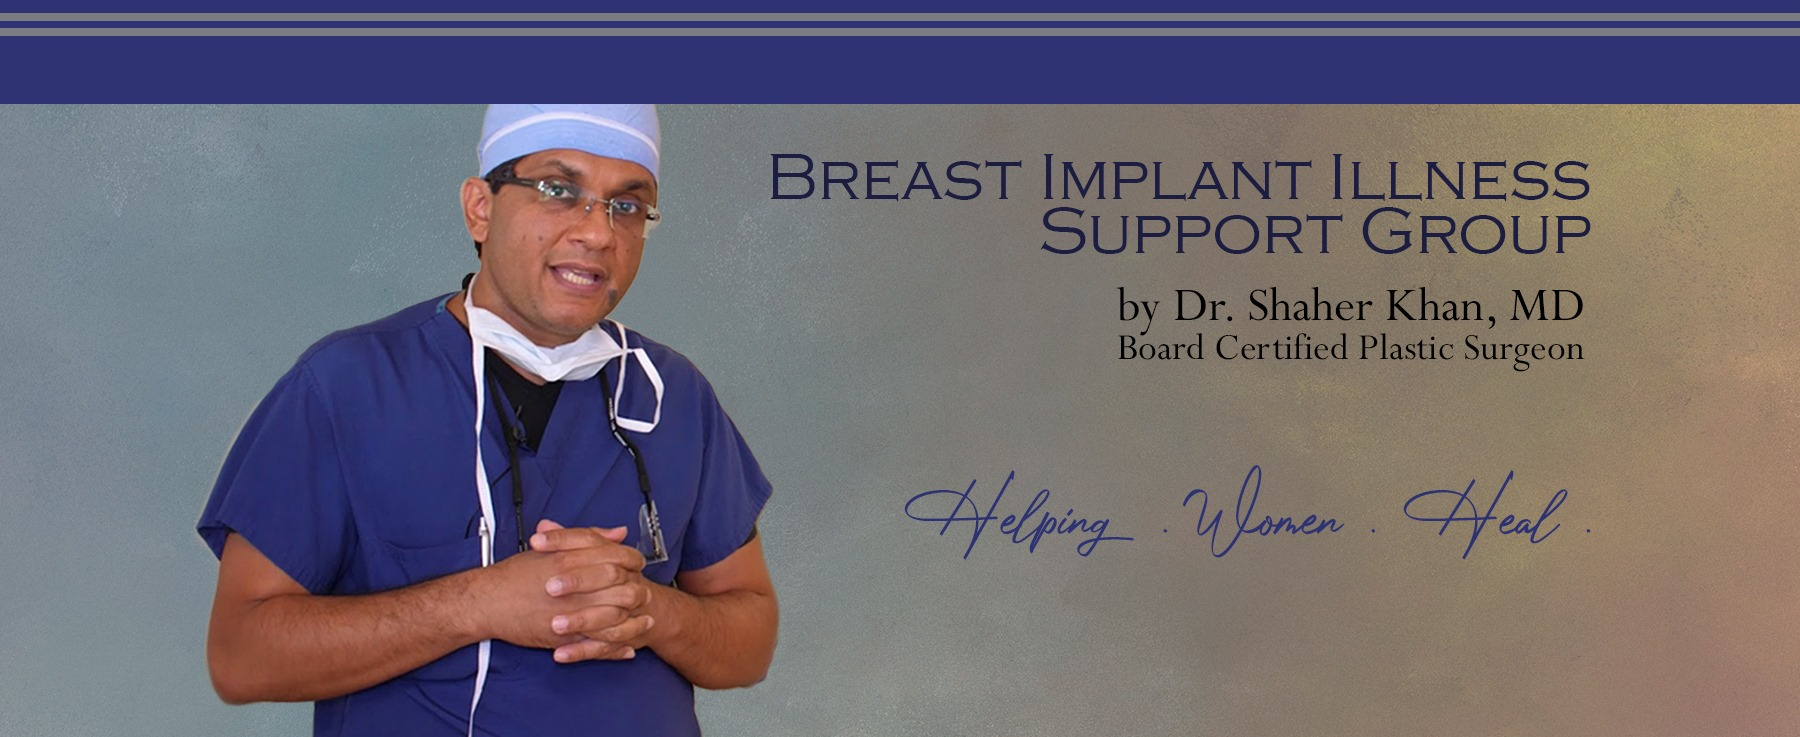 Breast Implant Illness Support Group